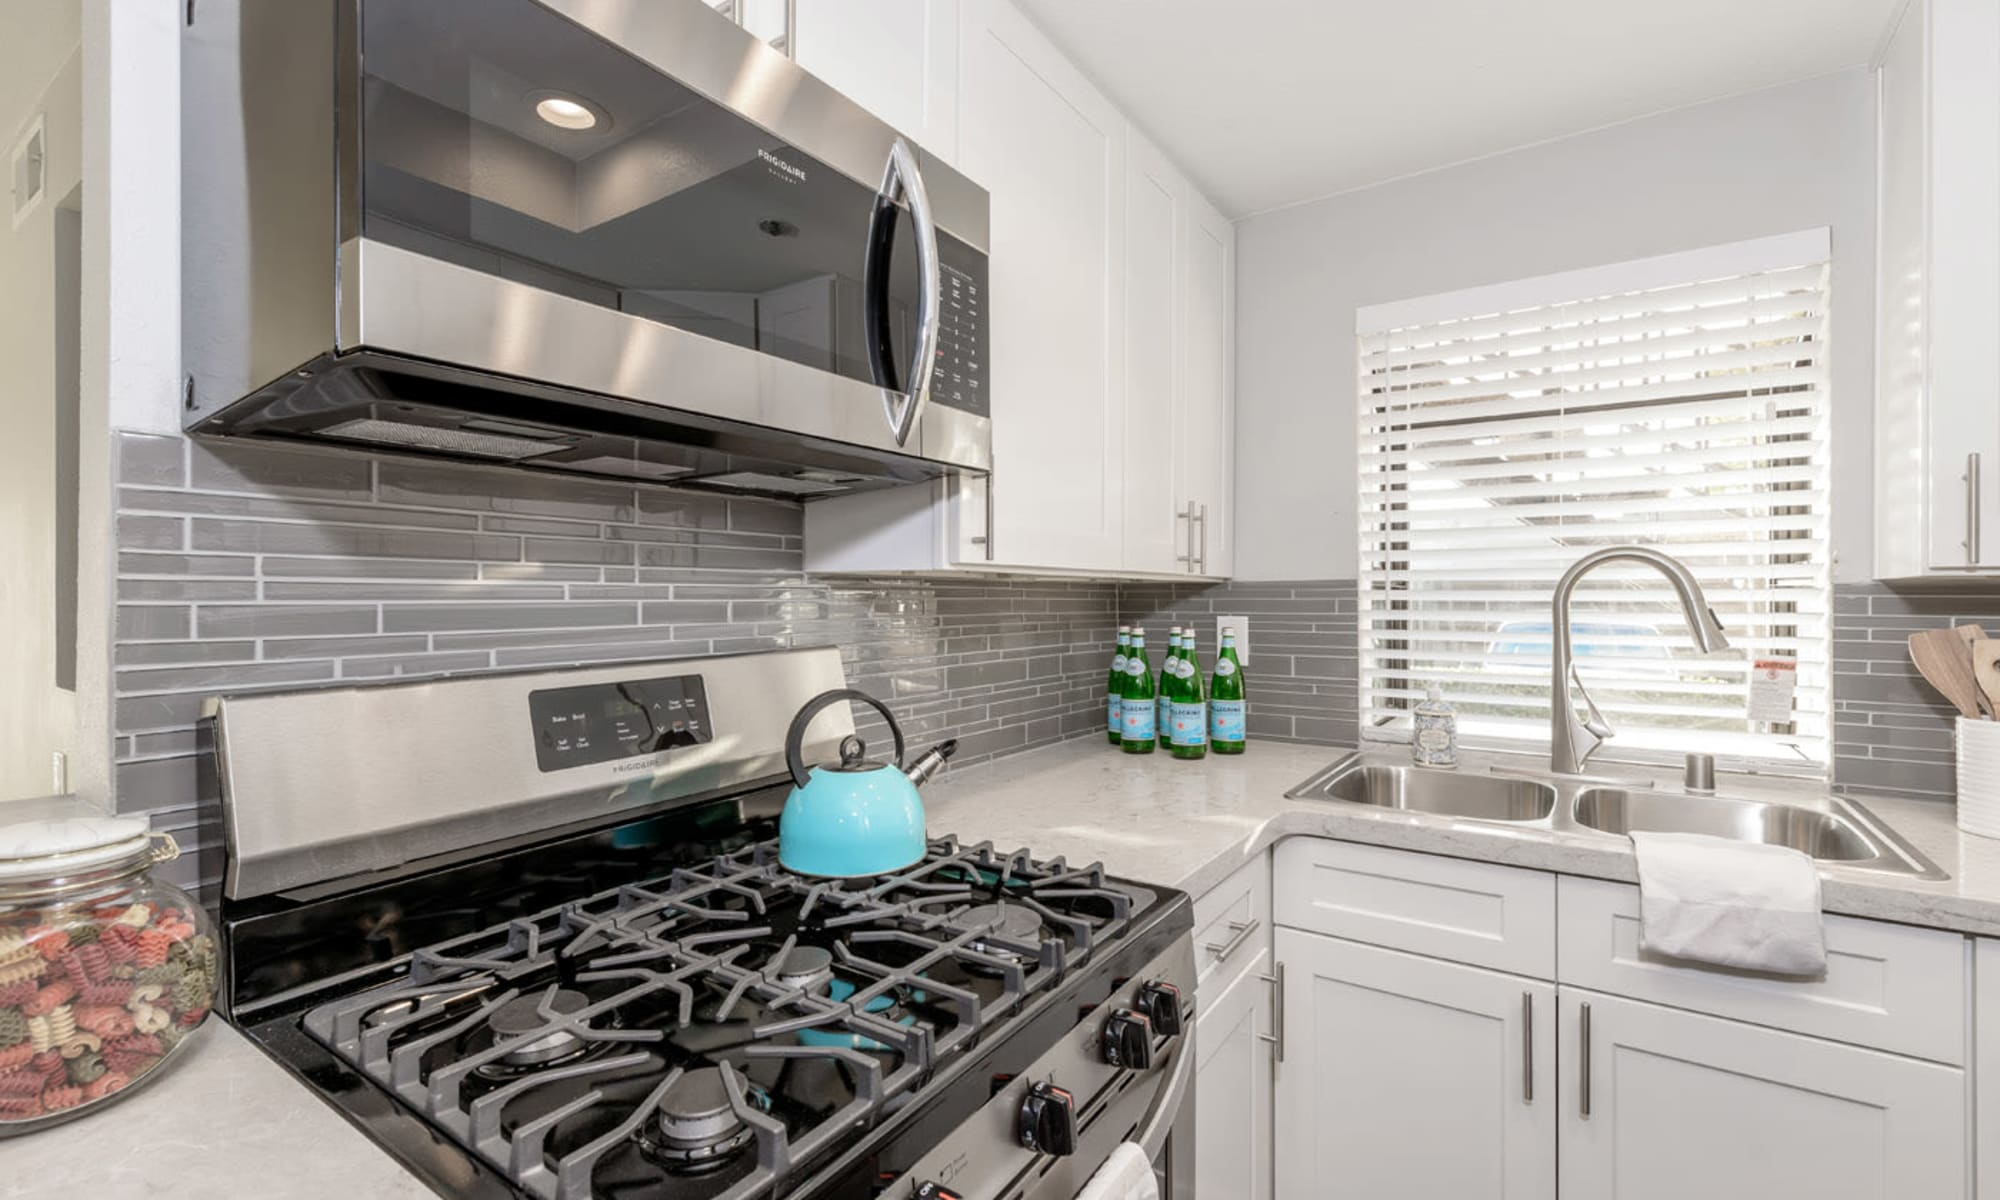 Subway tile backsplash and stainless-steel appliances in a remodeled model home's kitchen at Sendero Huntington Beach in Huntington Beach, California